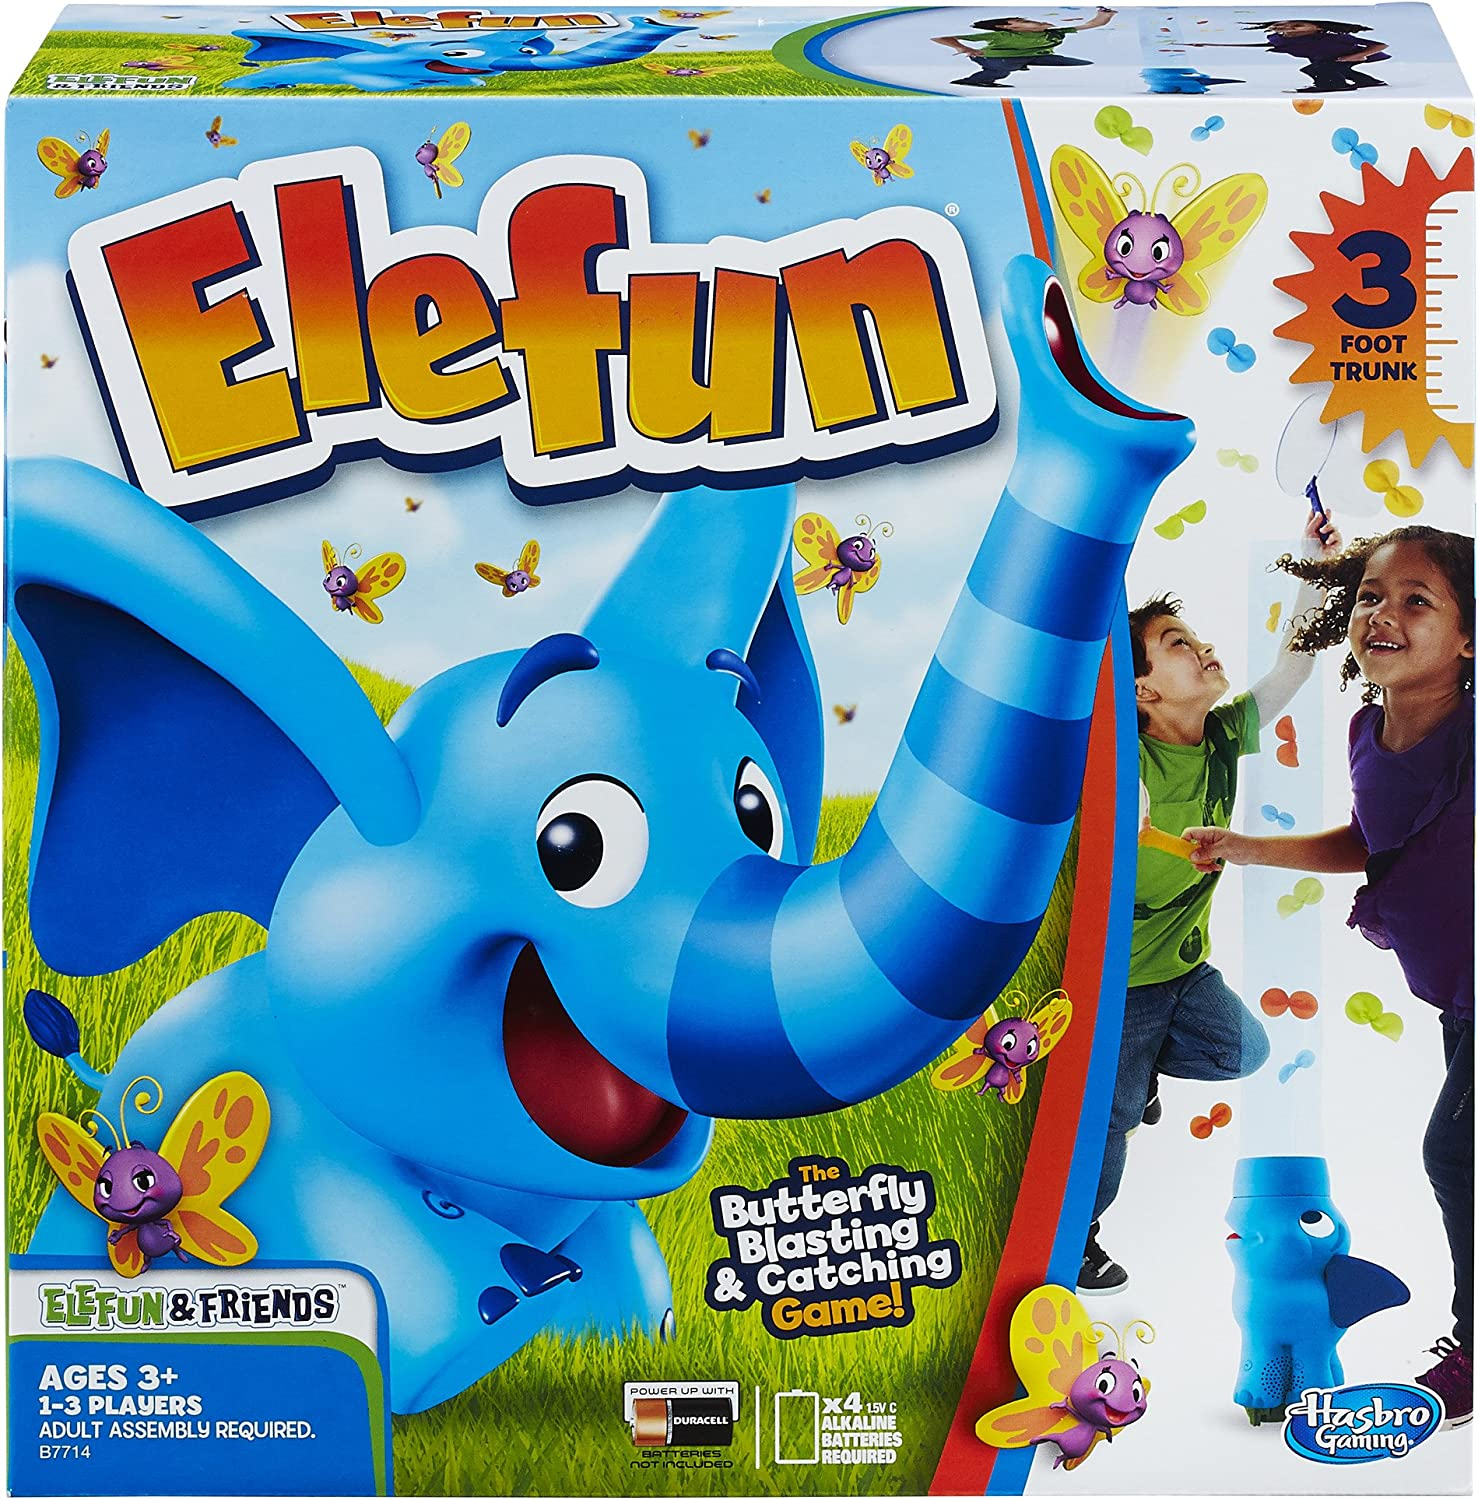 Hasbro Elefun and Friends Elefun Game with Butterflies and Music Kids Ages 3 and Up (Amazon Exclusive)